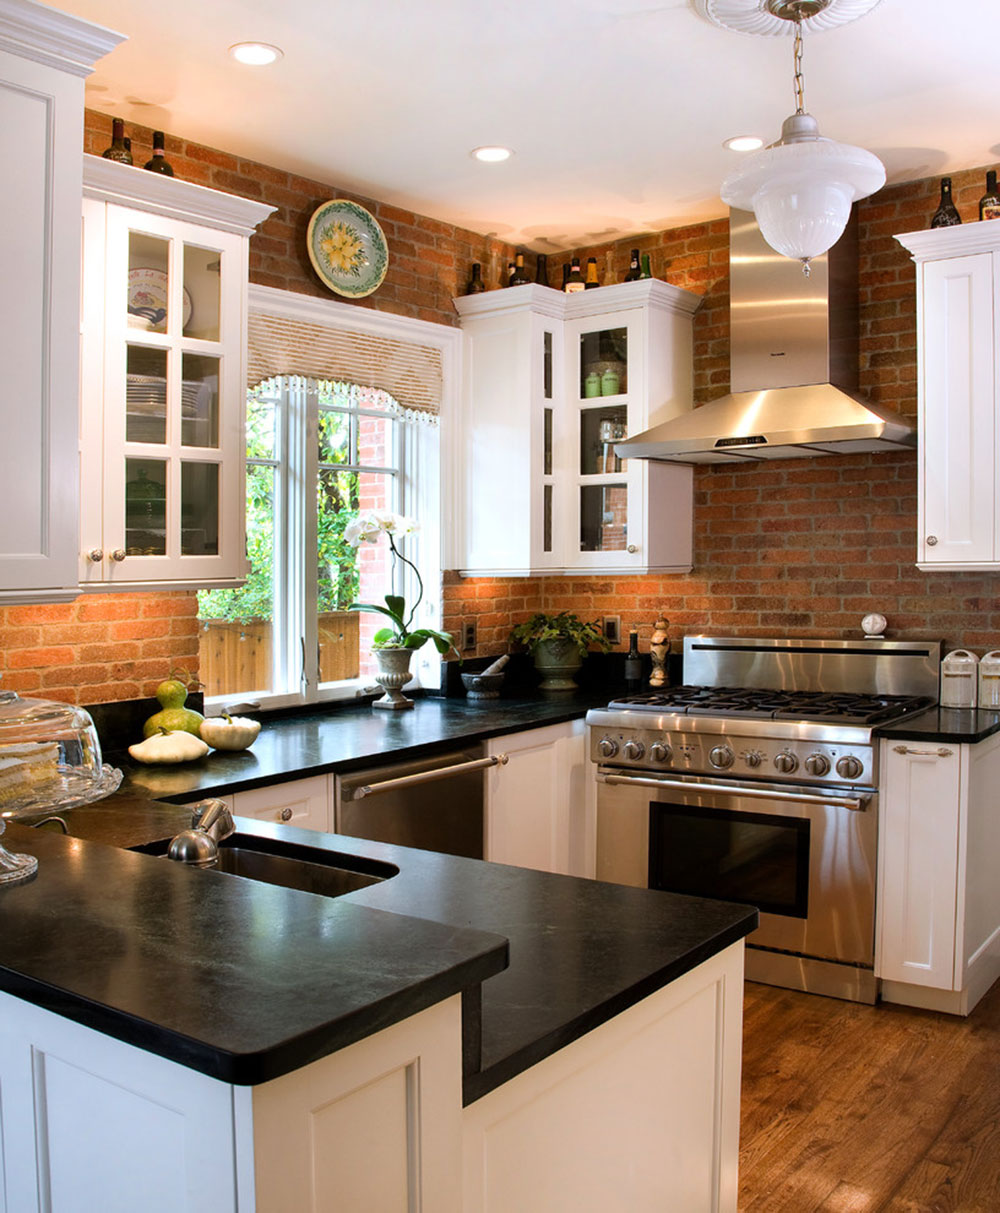 Modern Brick Backsplash Kitchen Ideas